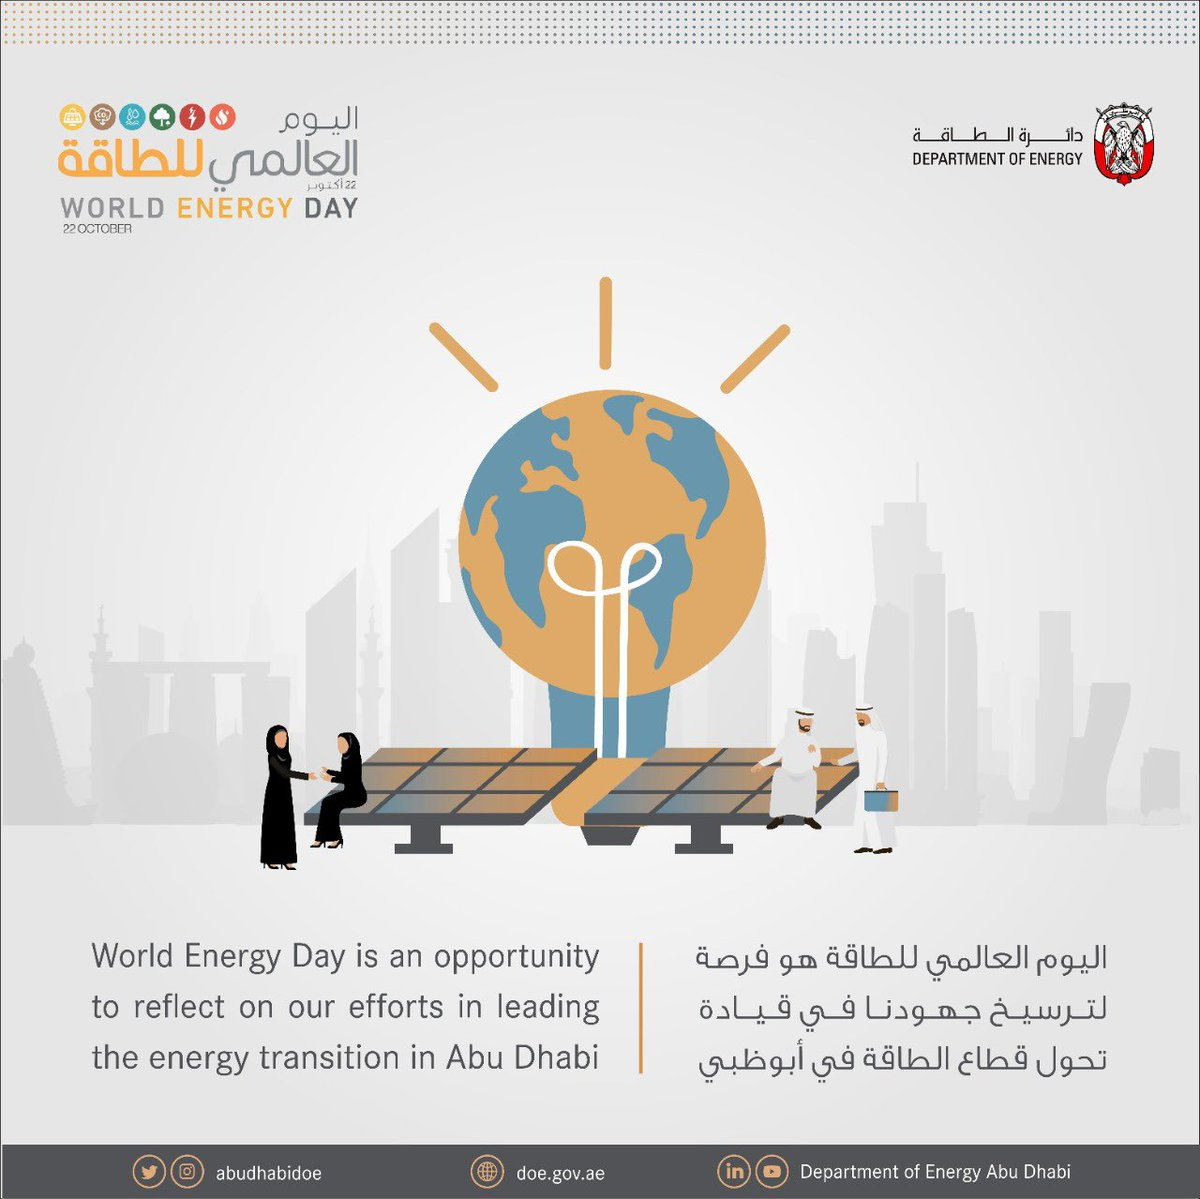 #WorldEnergyDay is an opportunity to reflect on our efforts in leading the energy transition in Abu Dhabi and promoting efficient, environmentally sustainable energy practices that positively influence consumption behaviors and support the emirate's socio-economic development. https://t.co/4TKNBltGMd